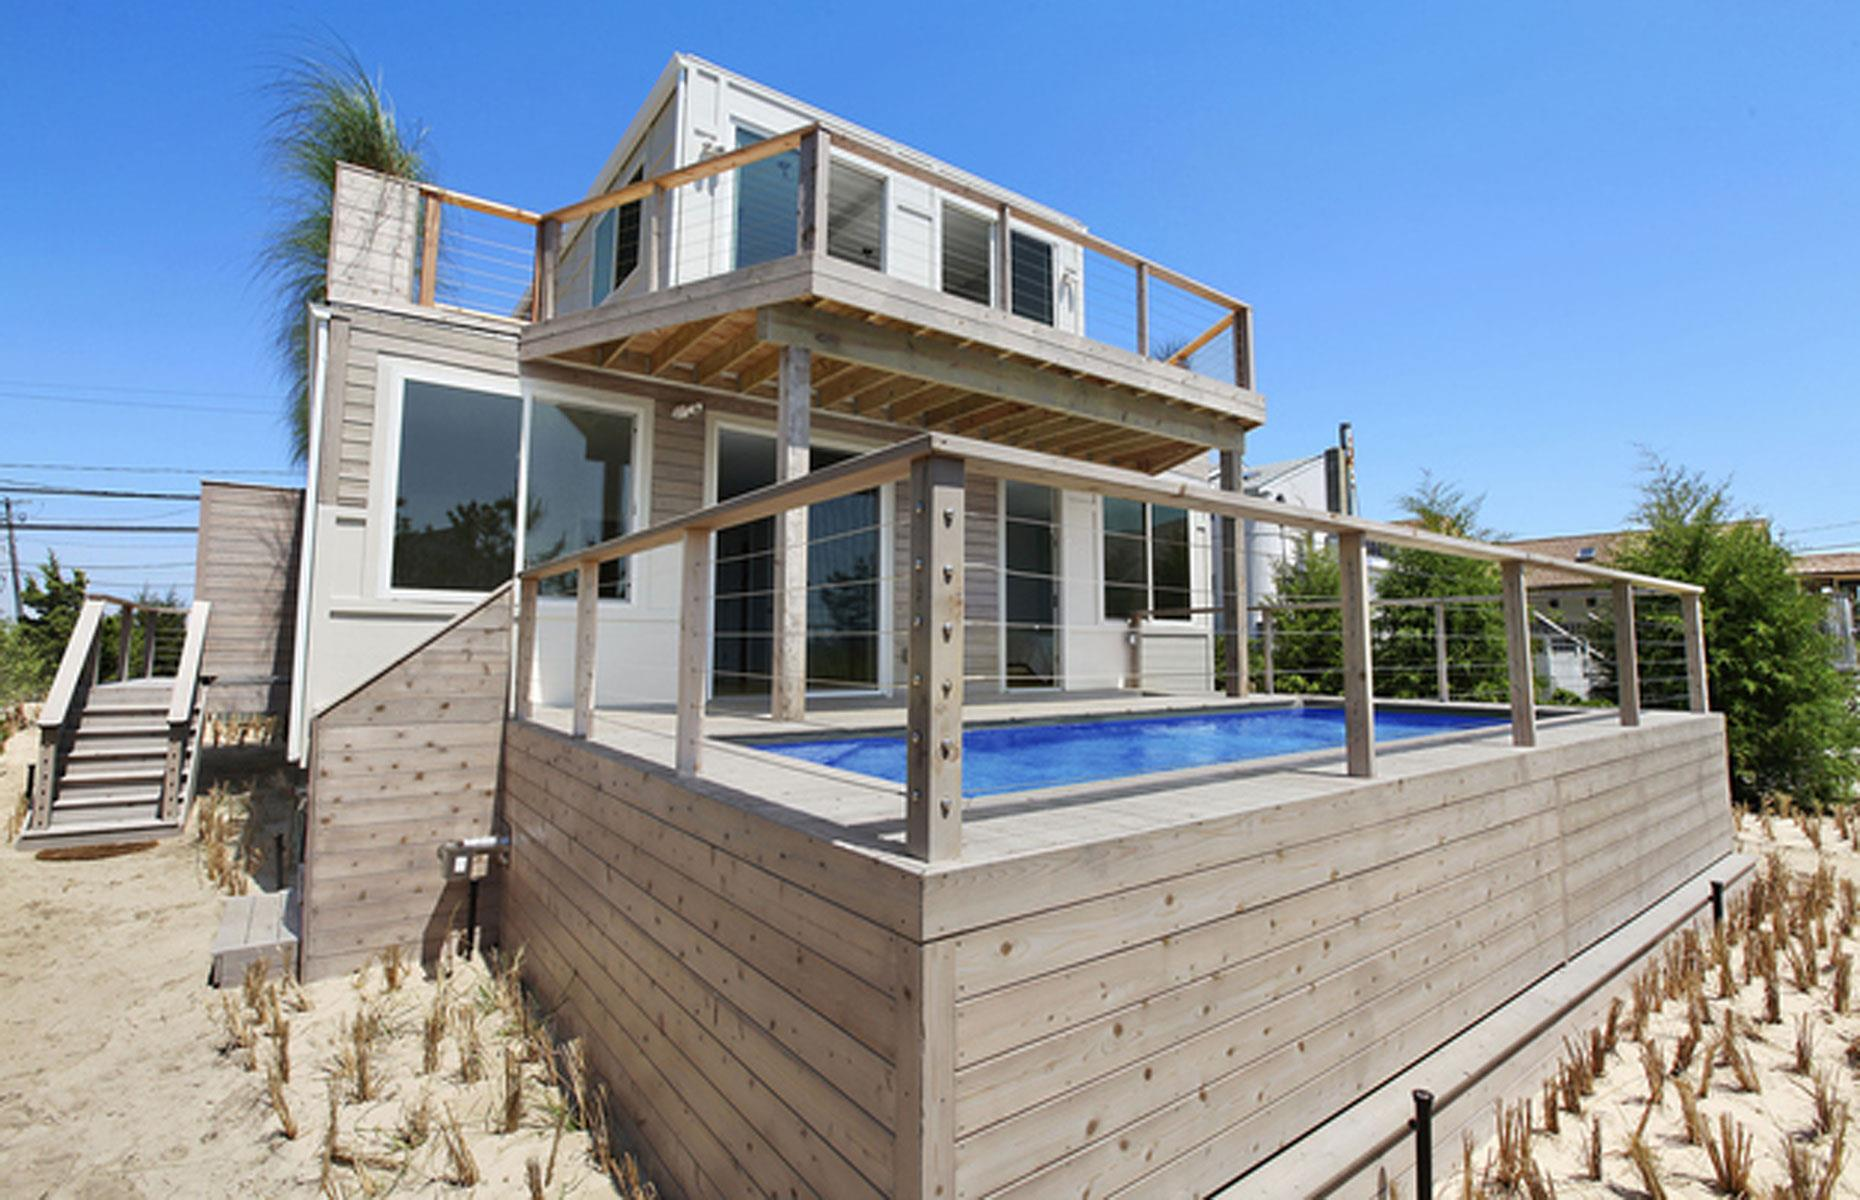 15 stunning homes made out of shipping containers